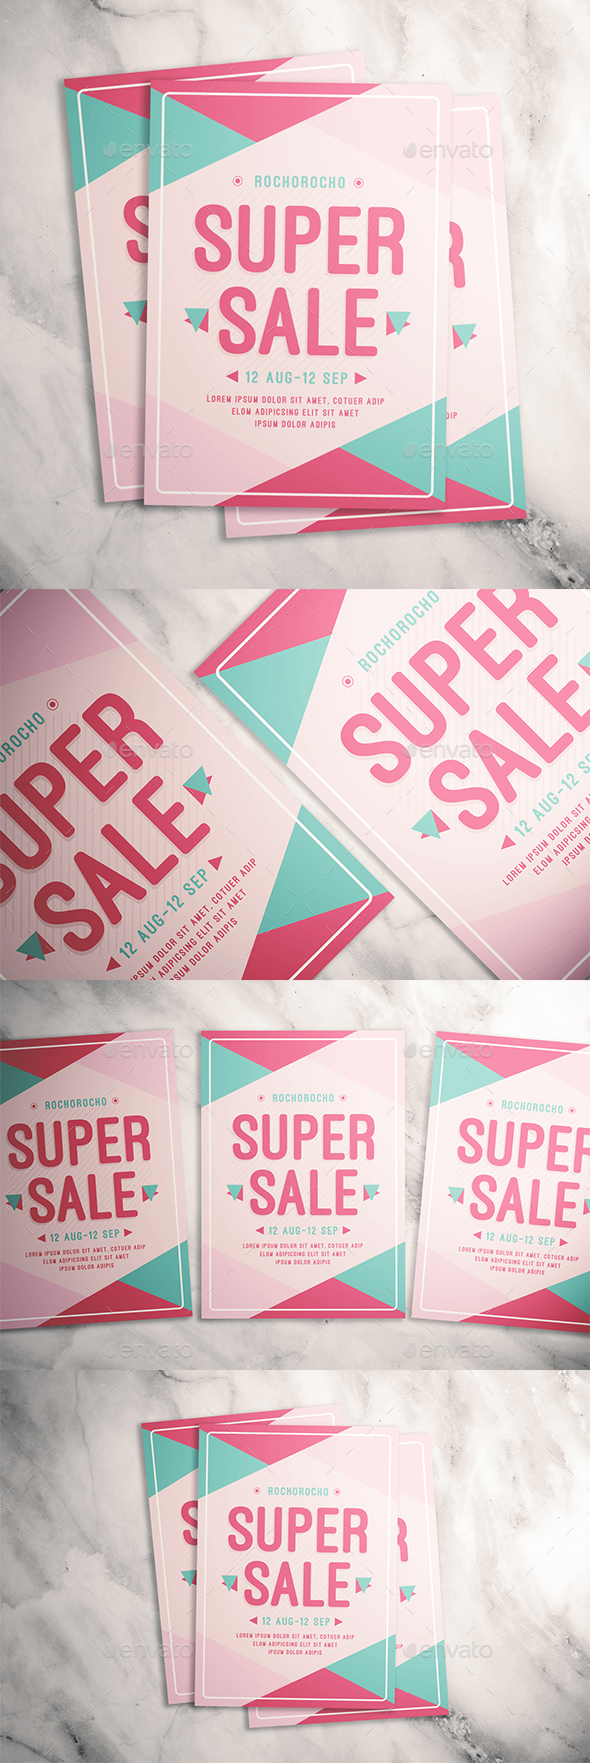 Super Sale Flyer - Events Flyers